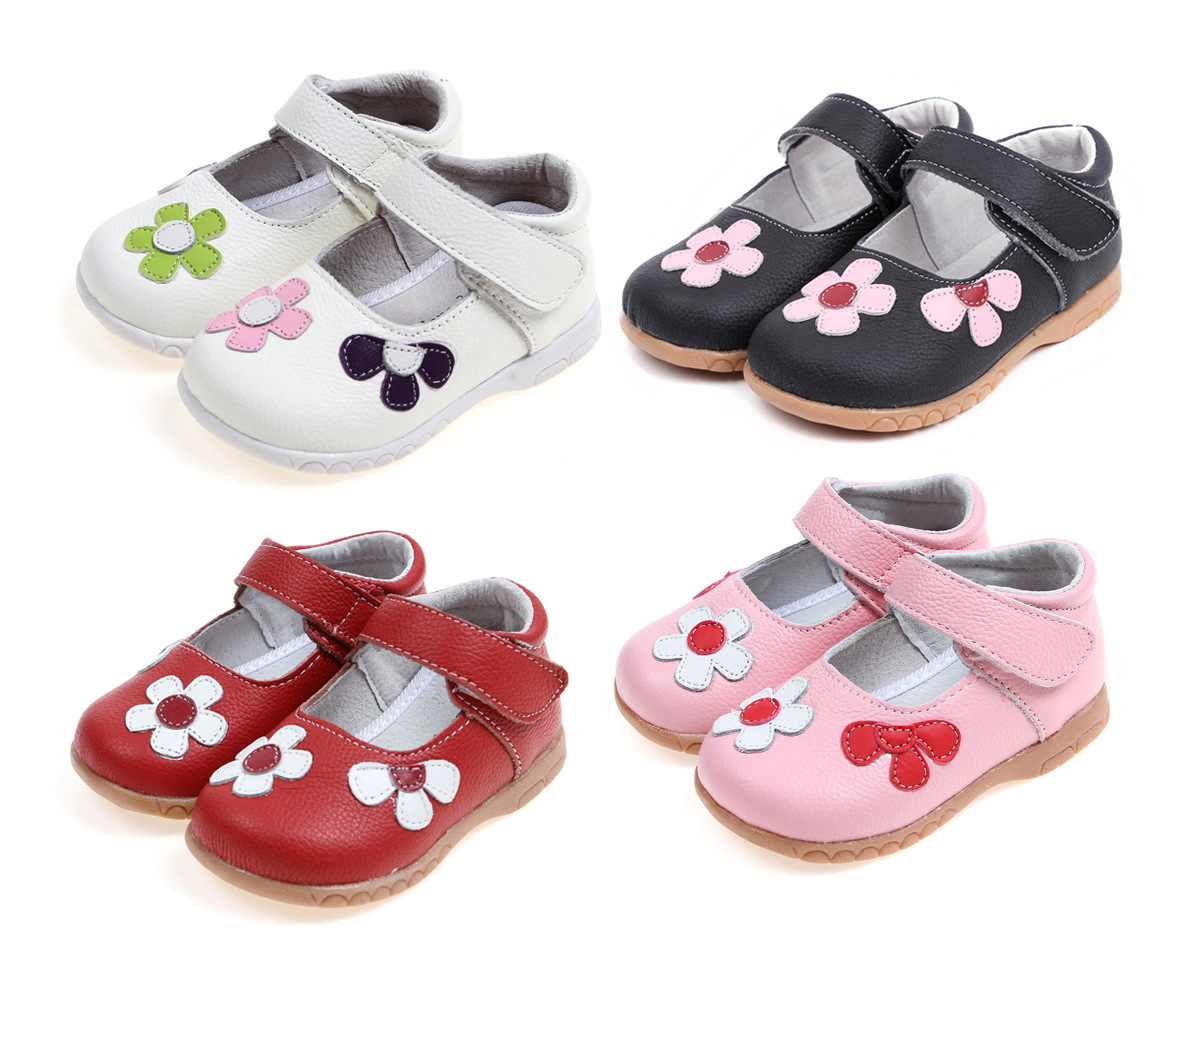 2017 new spring flowers and leather selling children shoes children sandals girls sandals